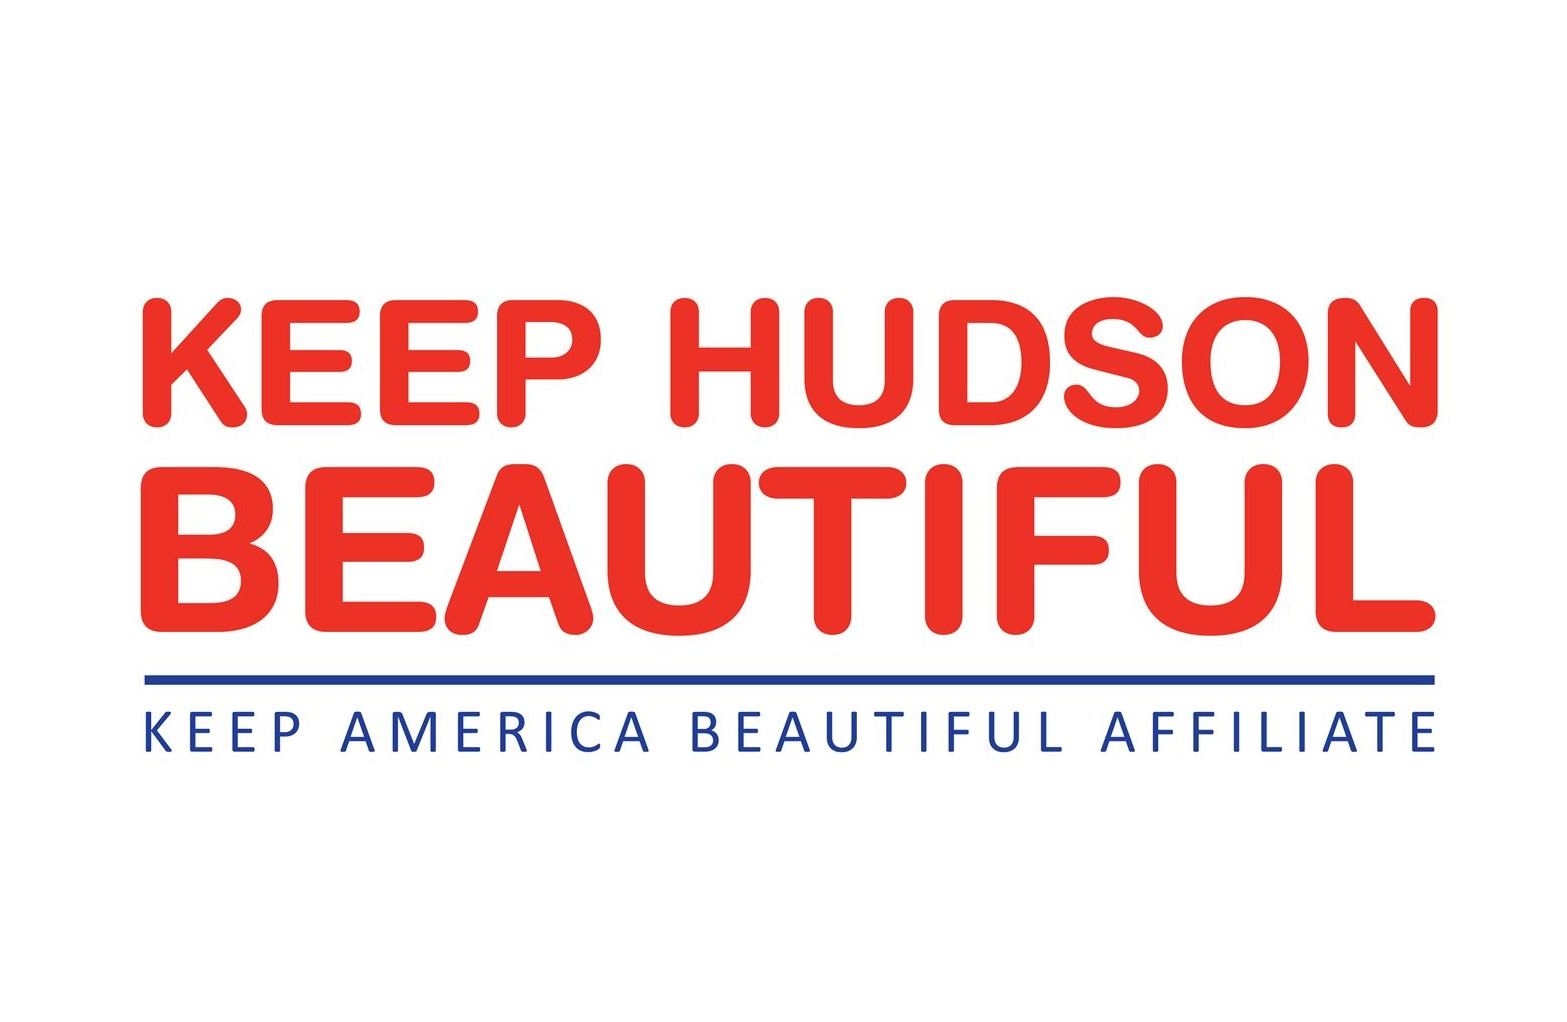 KeepHudsonBeautiful